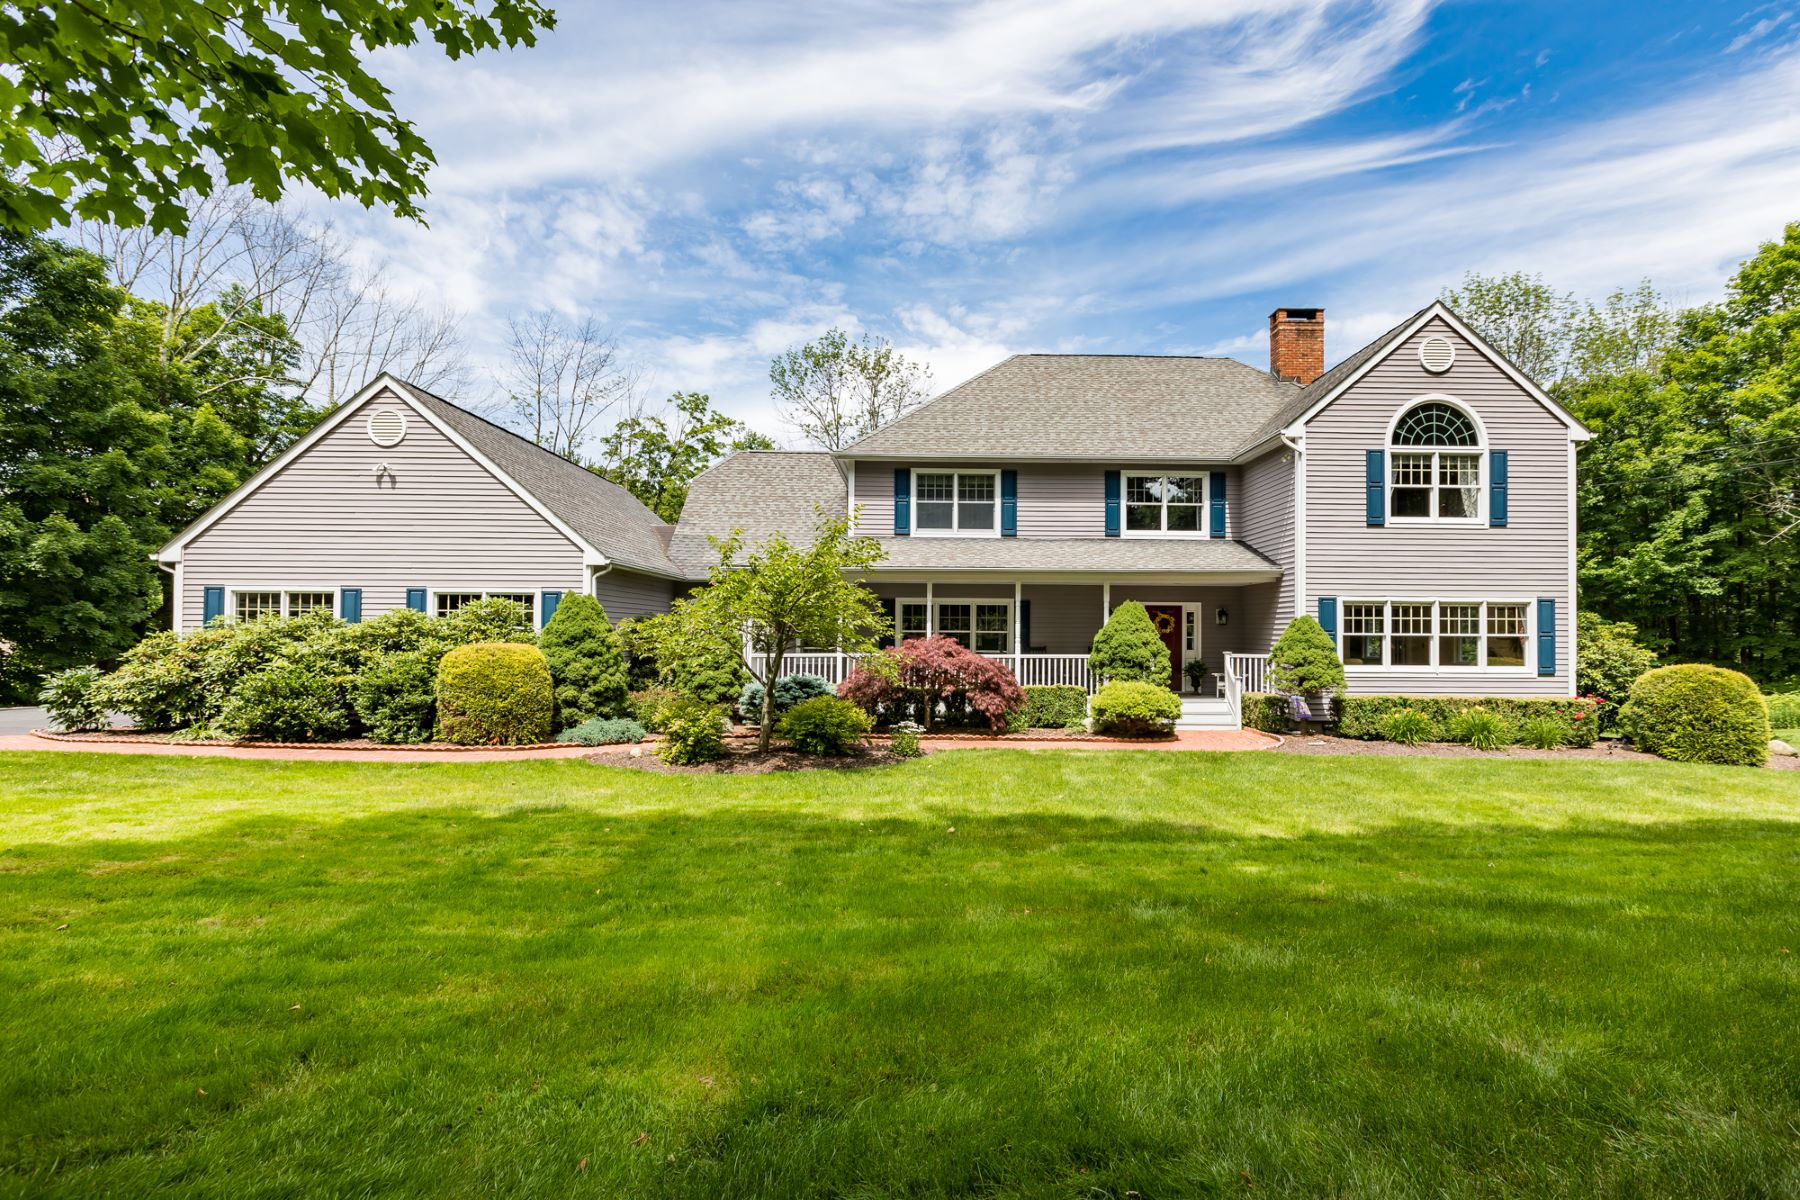 Single Family Homes for Sale at Gorgeous Sun-filled Home 838 North Salem Road Ridgefield, Connecticut 06877 United States